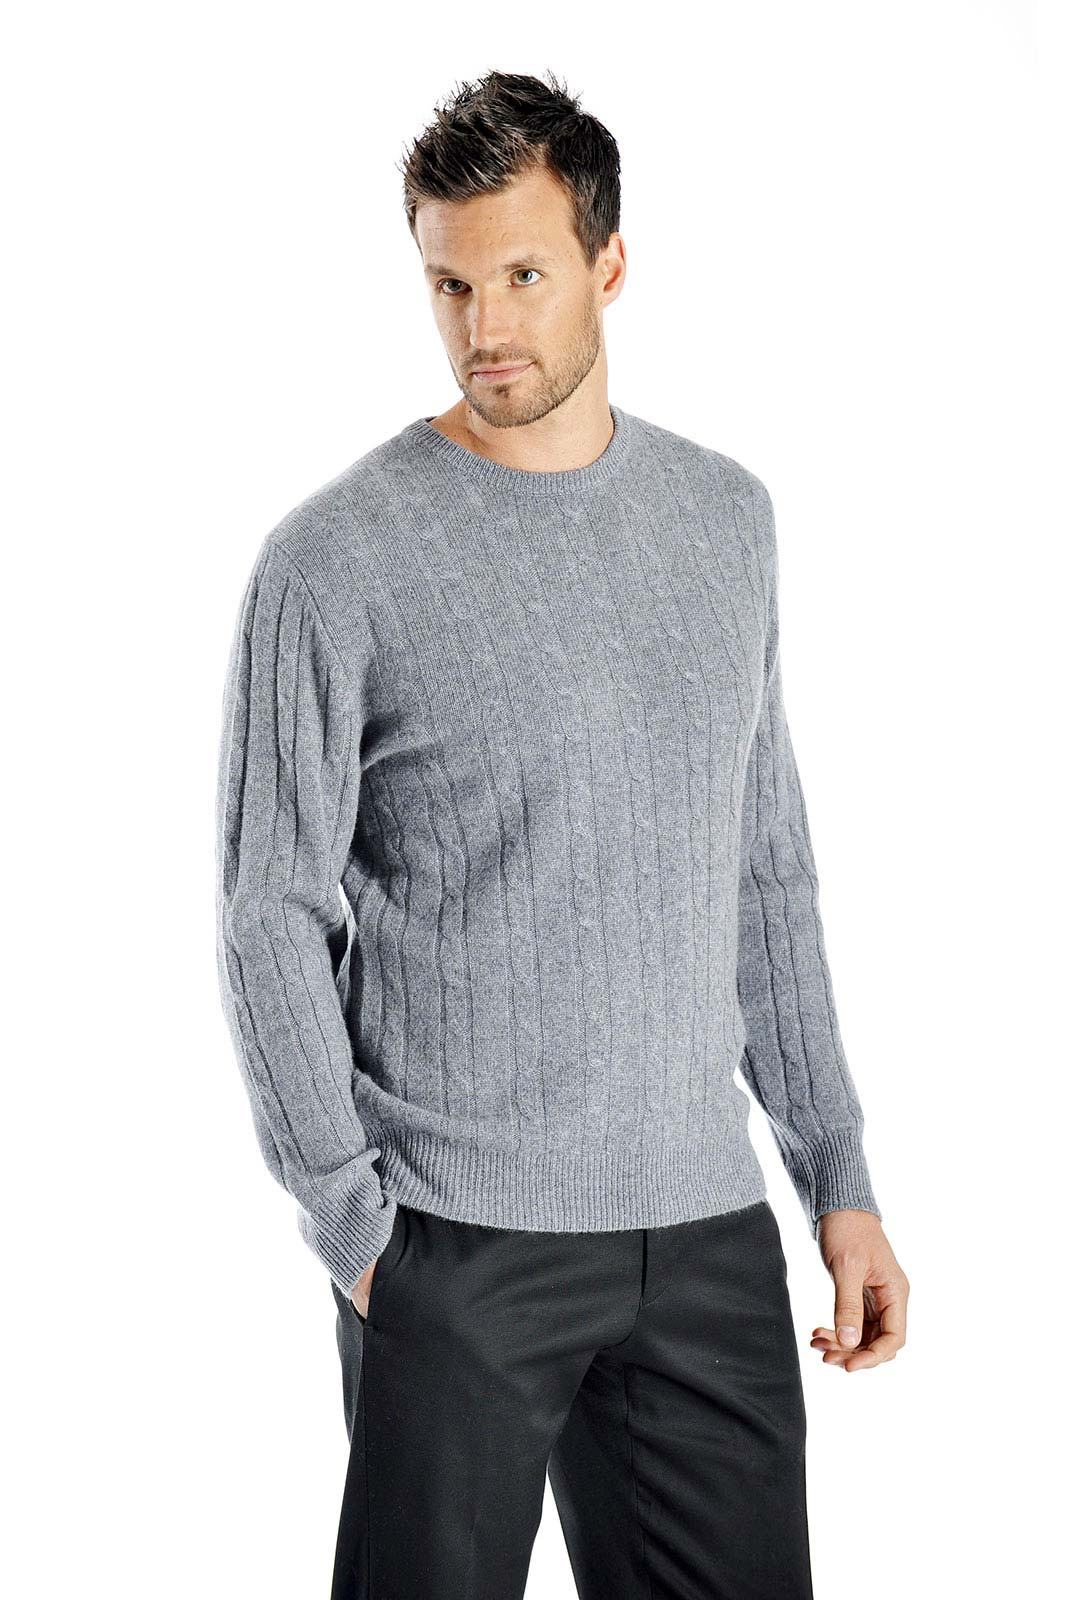 Shop online for Men's Sweaters at skachat-clas.cf Find crewneck, V-neck, cardigan & pullover styles. Free Shipping. Free Returns. All the time.